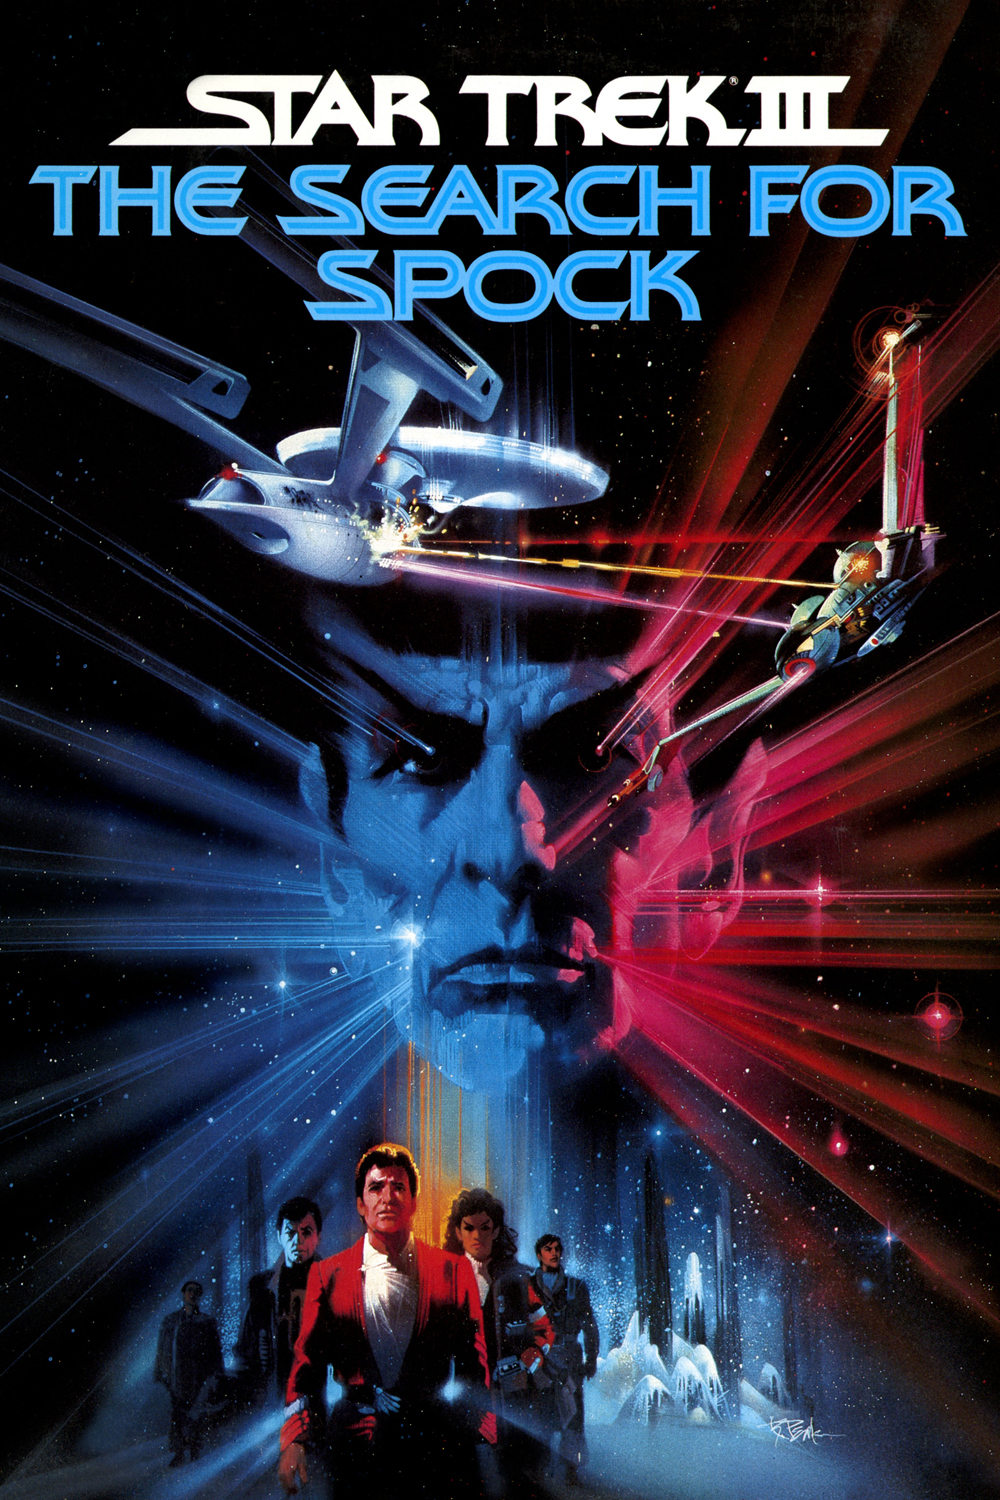 Search For Missing 16 Year Old Girl: STAR TREK III: THE SEARCH FOR SPOCK (1984)